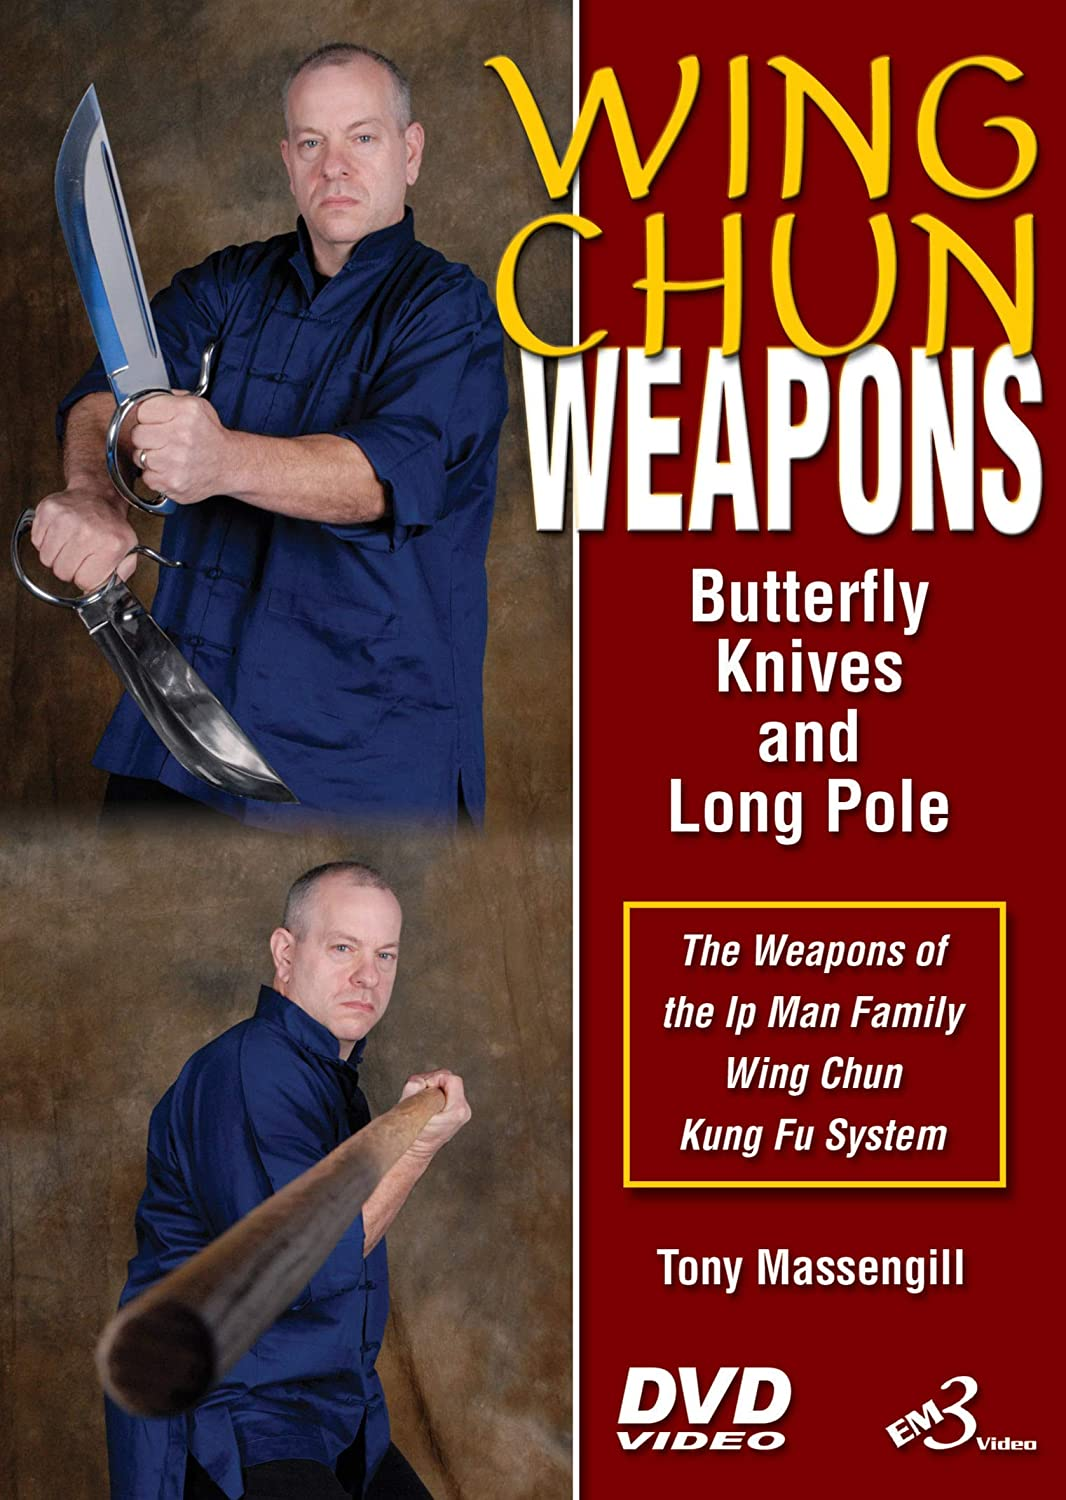 By Master Tony Massengill WING CHUN WEAPONS Butterfly Knives /& Long Pole